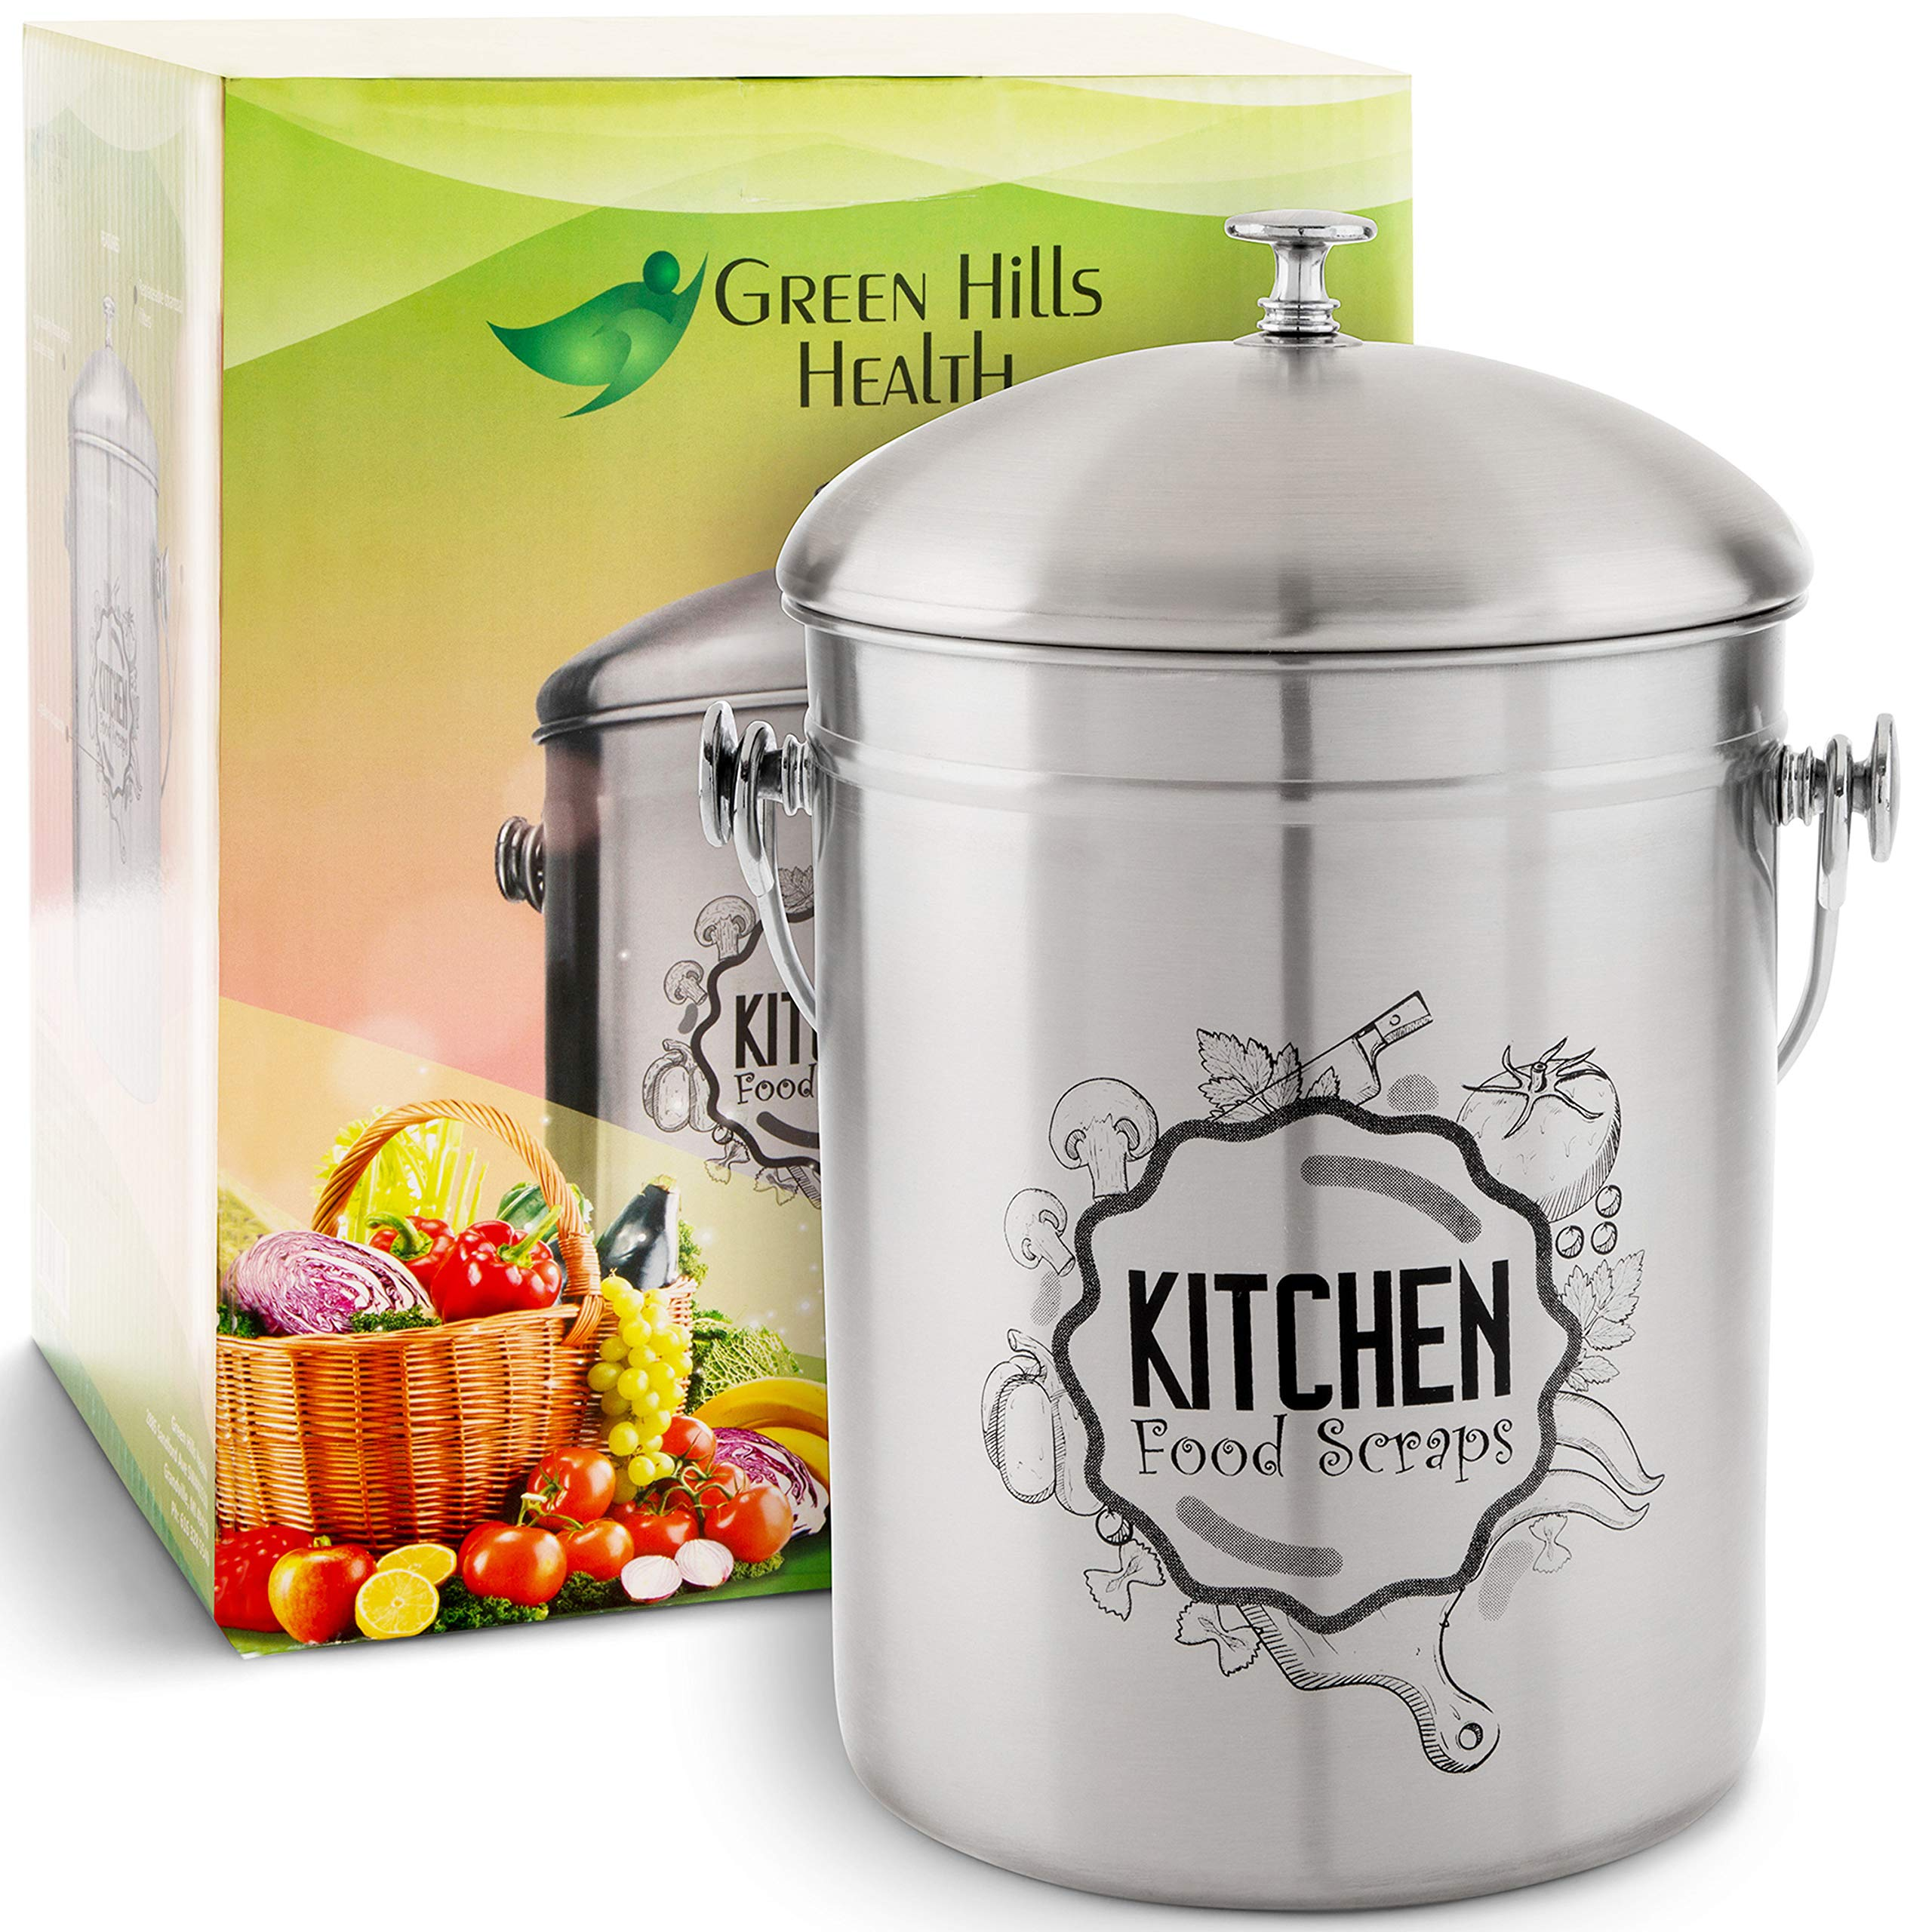 Kitchen Compost Bin Stainless Steel (Food Grade 410) Odorless Countertop Compost Pail -Bonus Charcoal Filters & Gardening Gloves. Insect-proof 1.3 Gallon bucket. Gift Boxed, and Gift Wrap available by Green Hills Health (Image #9)